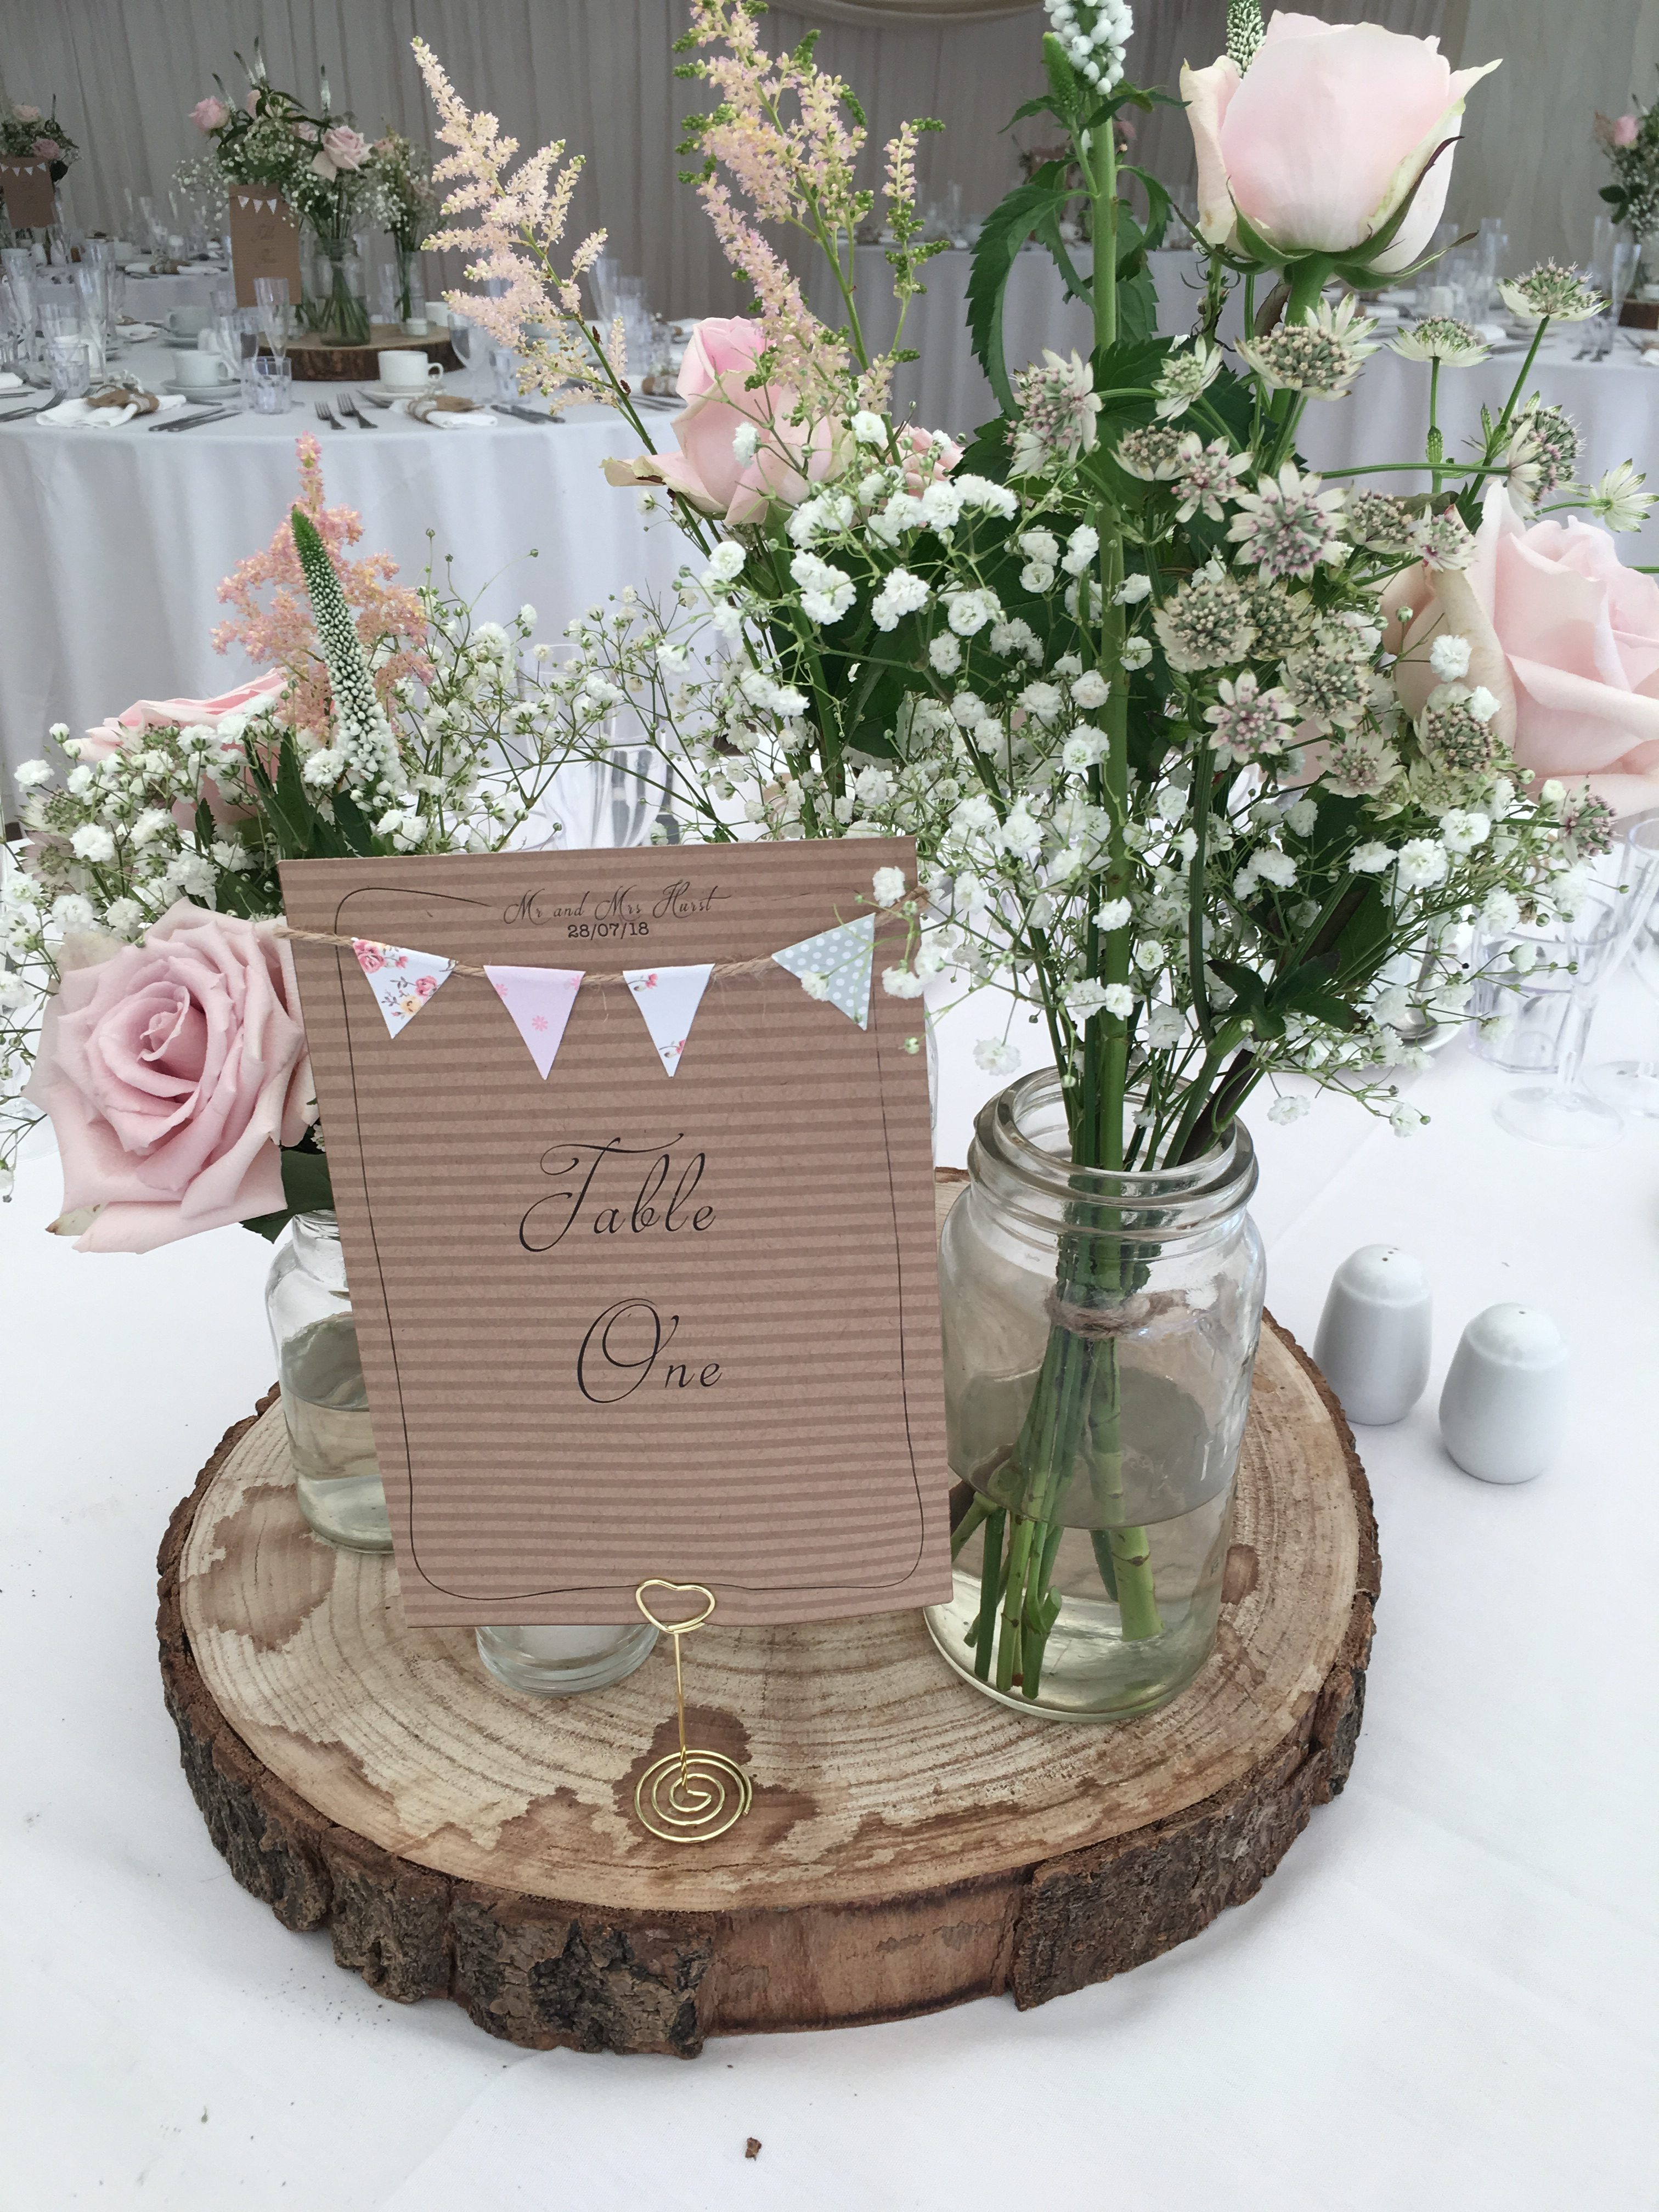 Rustic Table Numbers - My Little Future Sophia's Final Touch - Venue Styling - Weddings s